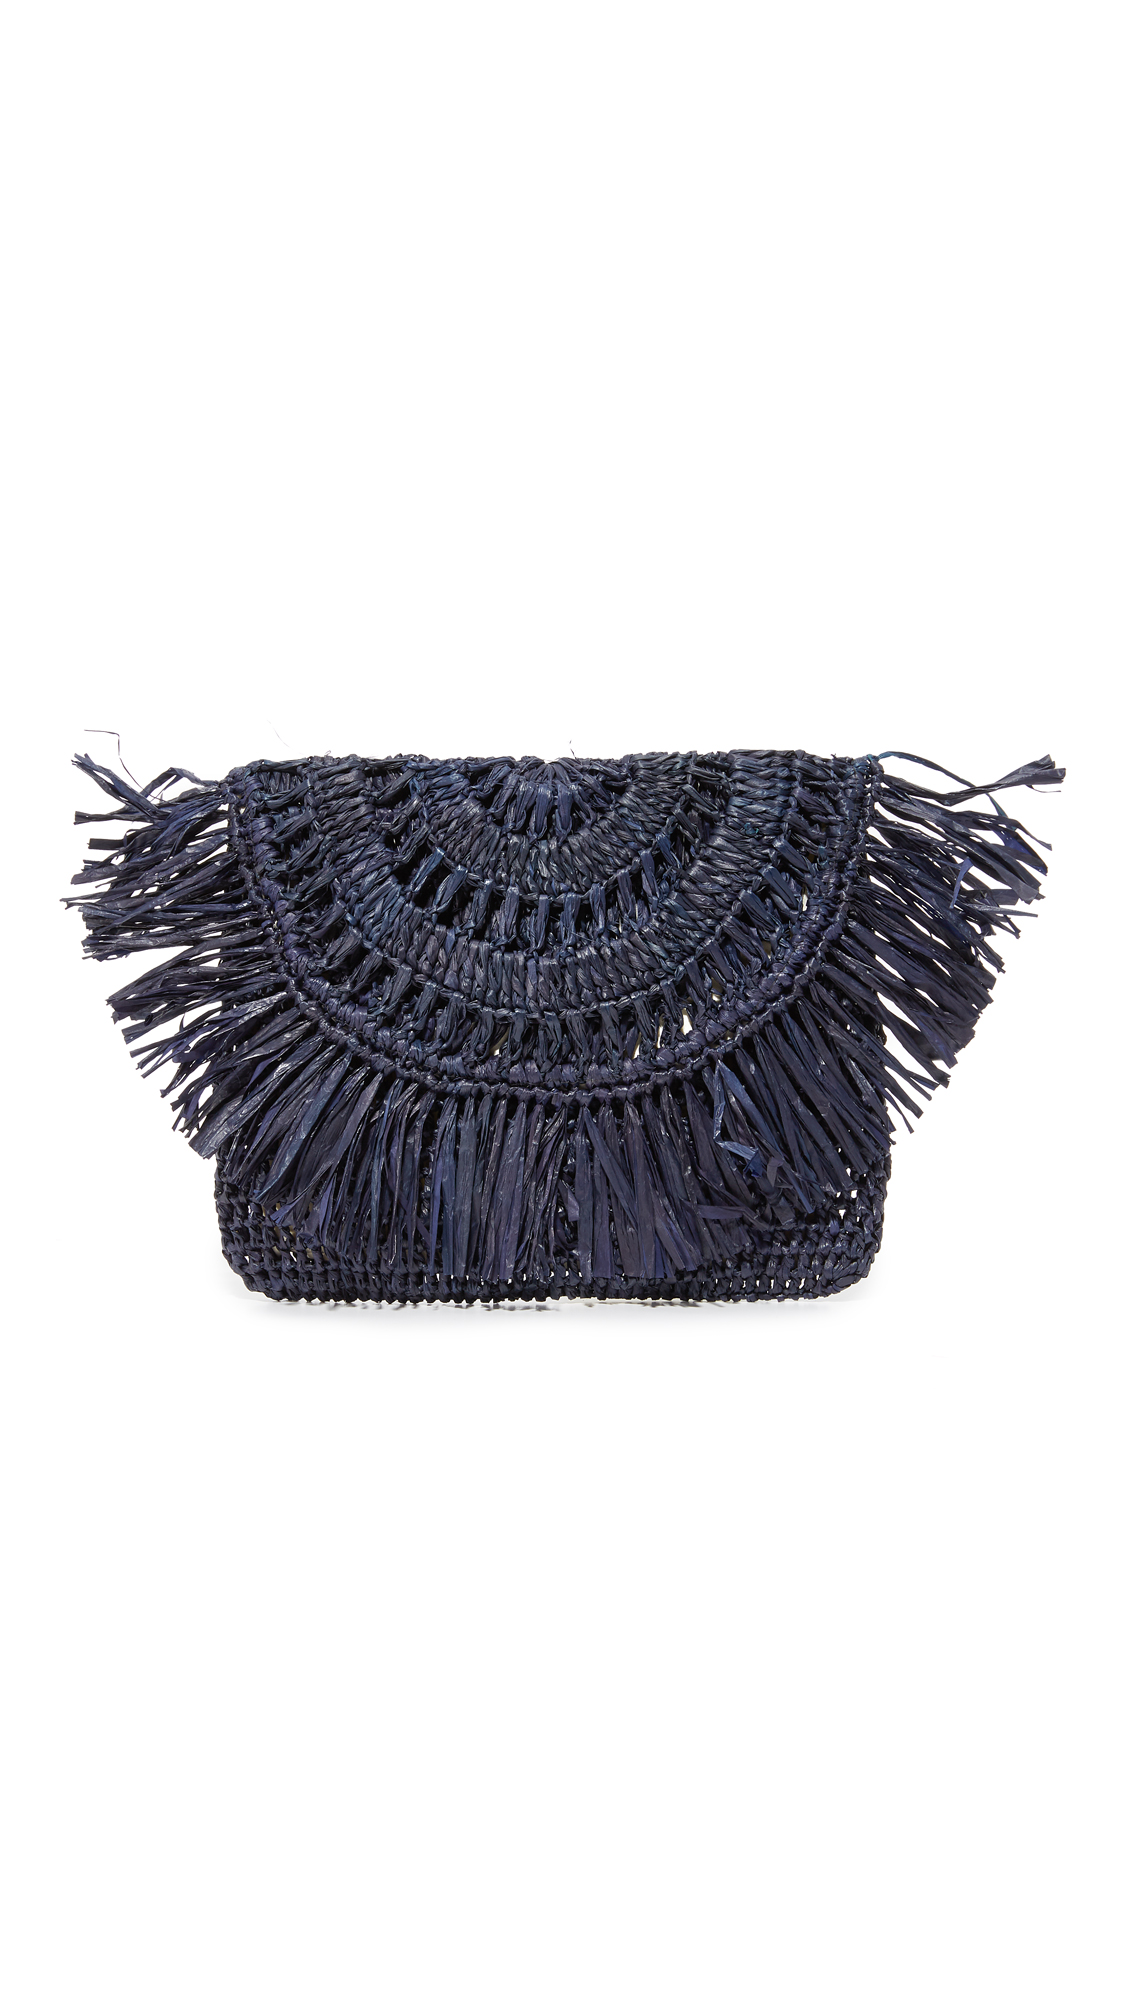 woven-bags-and-accessories-2018-clutch2